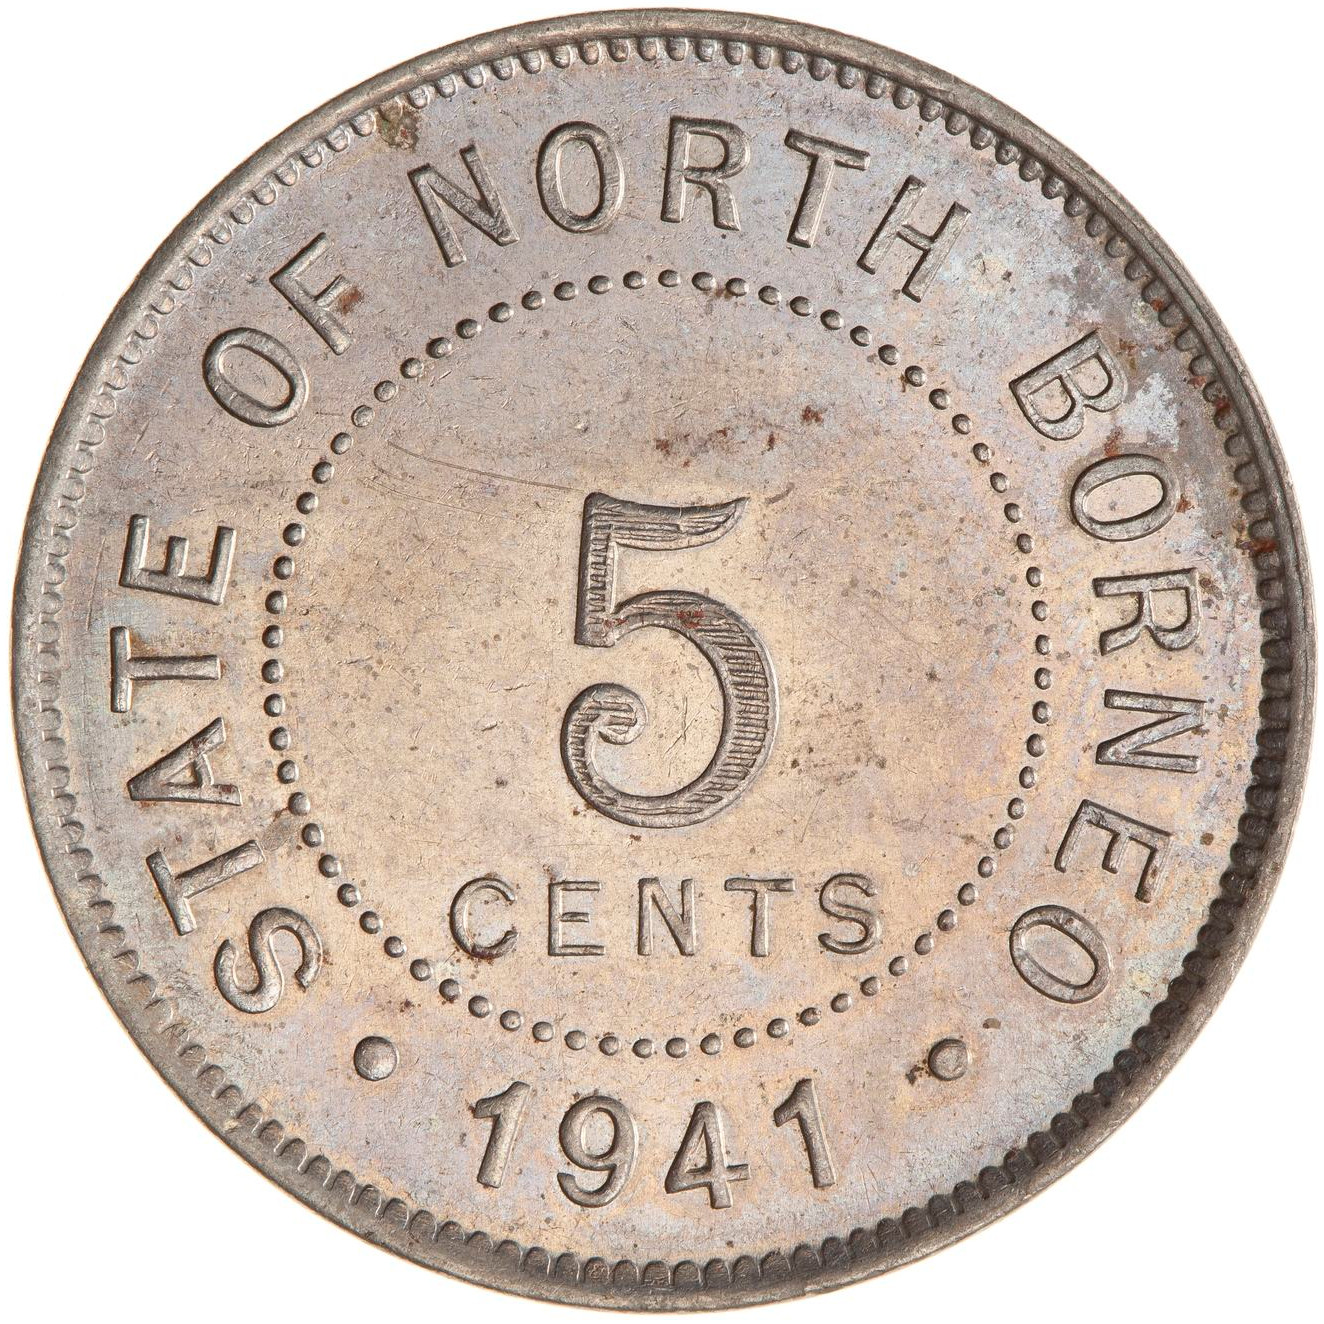 Five Cents 1941: Photo Coin - 5 Cents, North Borneo, 1941